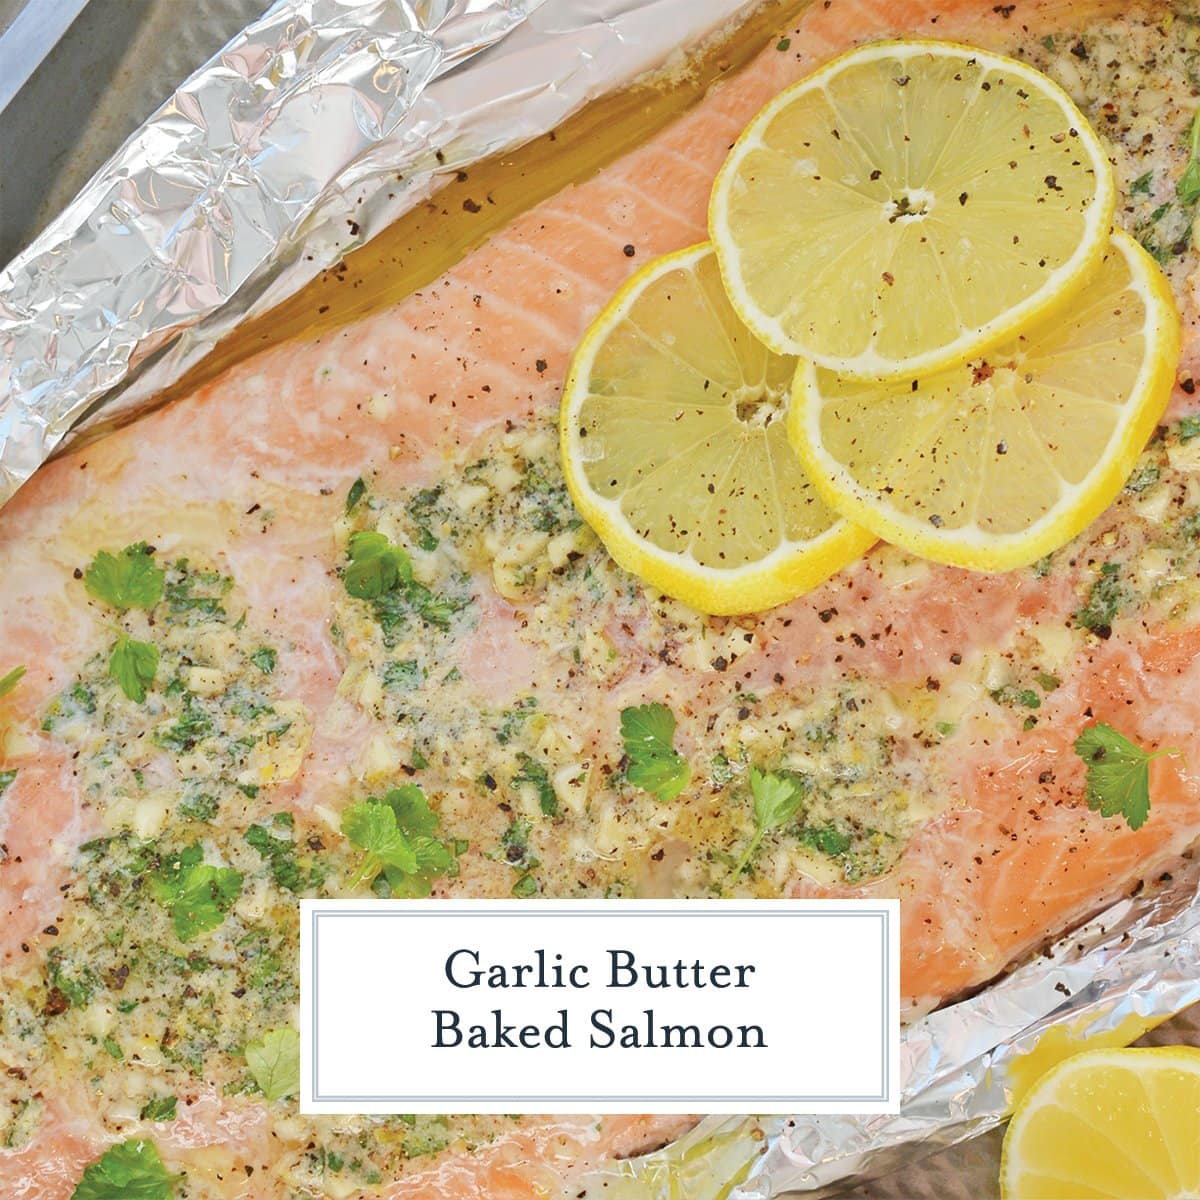 close up of salmon fillet in garlic butter sauce